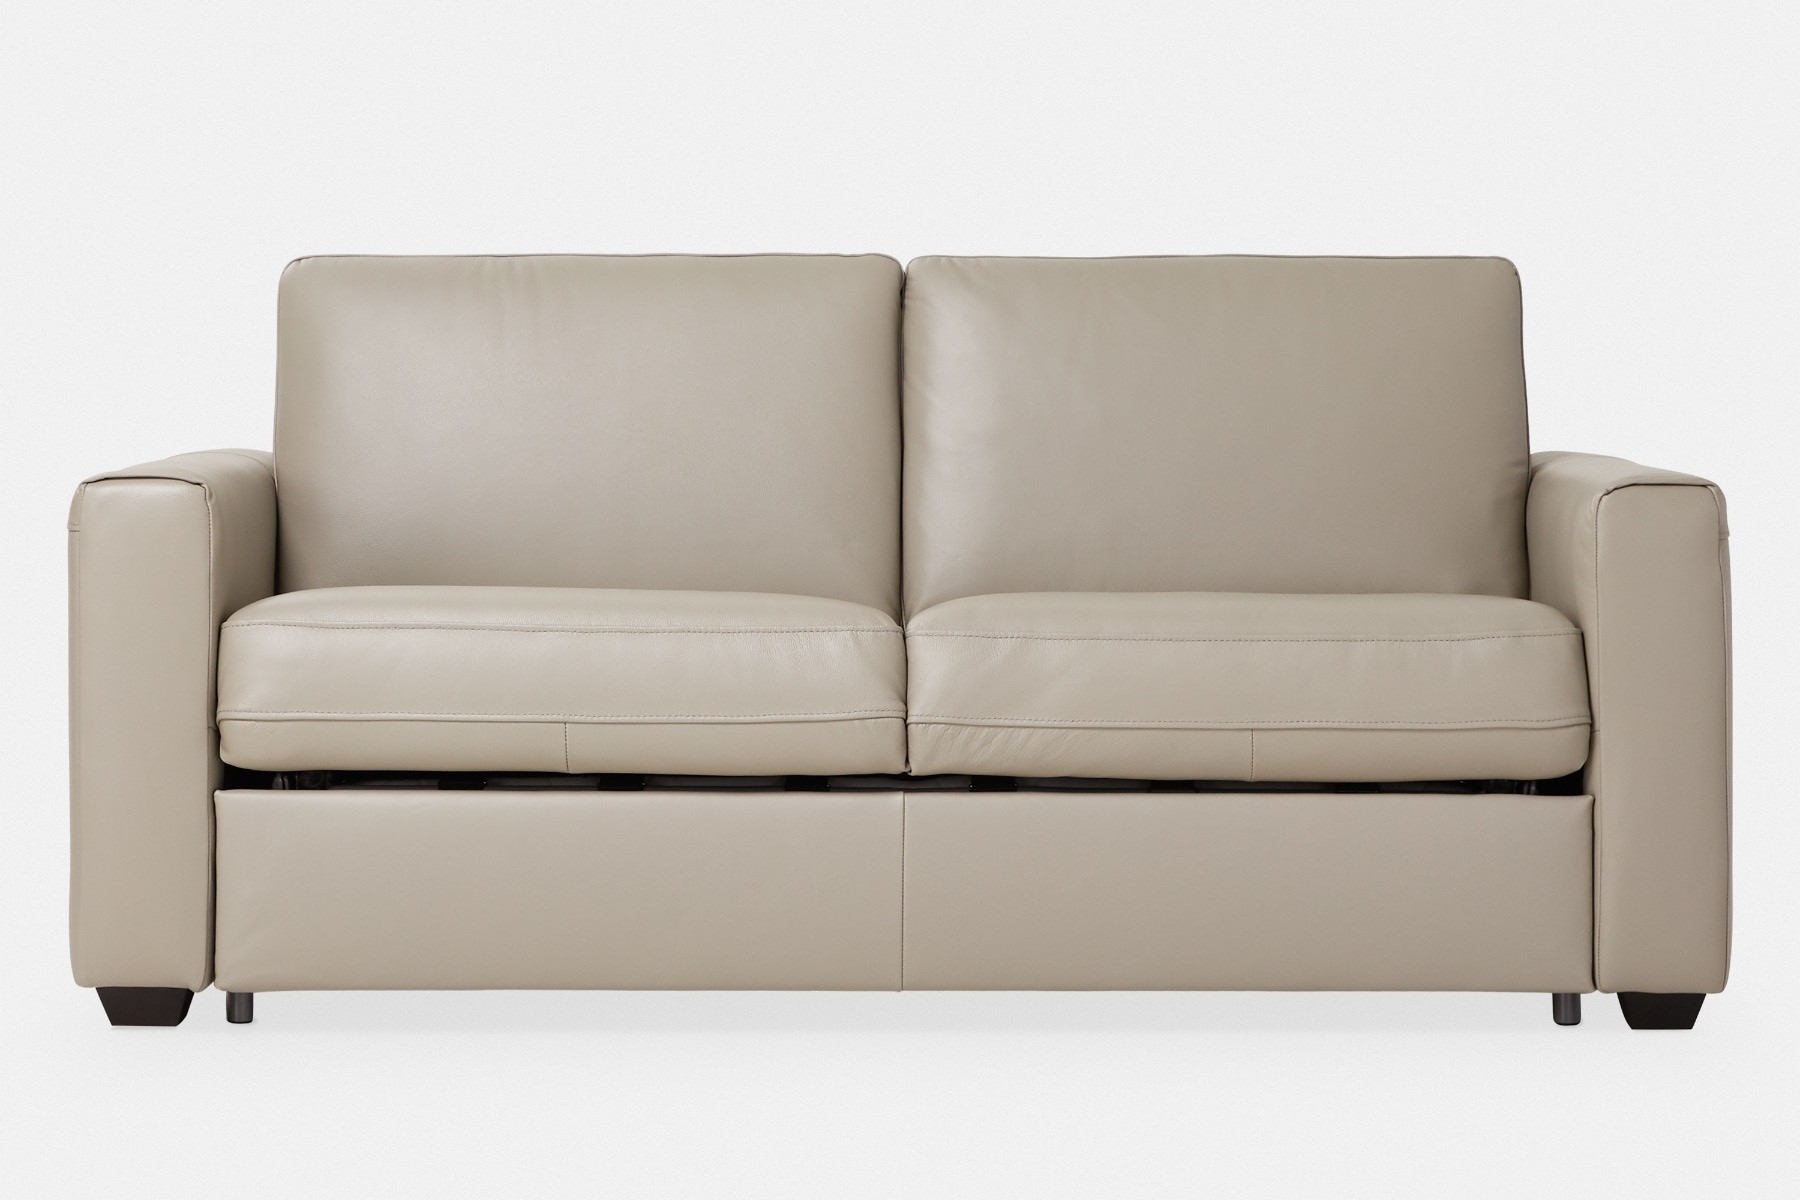 Dakovo Sofa Bed With Chaise Lounge Option Maison Corbeil